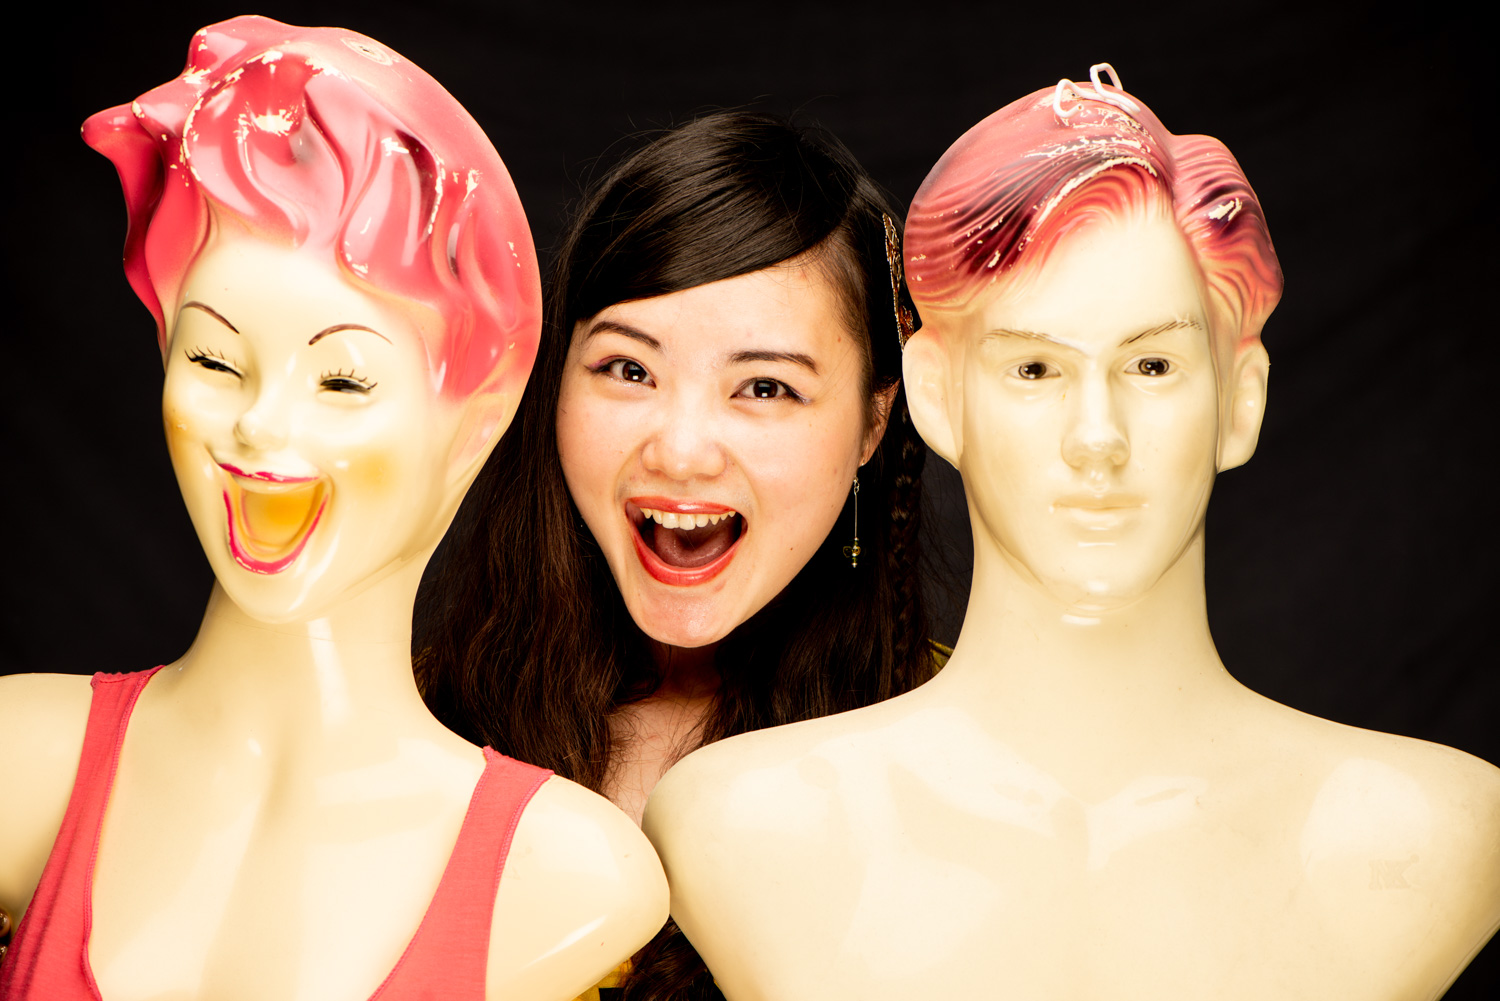 Two mannequins and a girl for frame within a frame photography